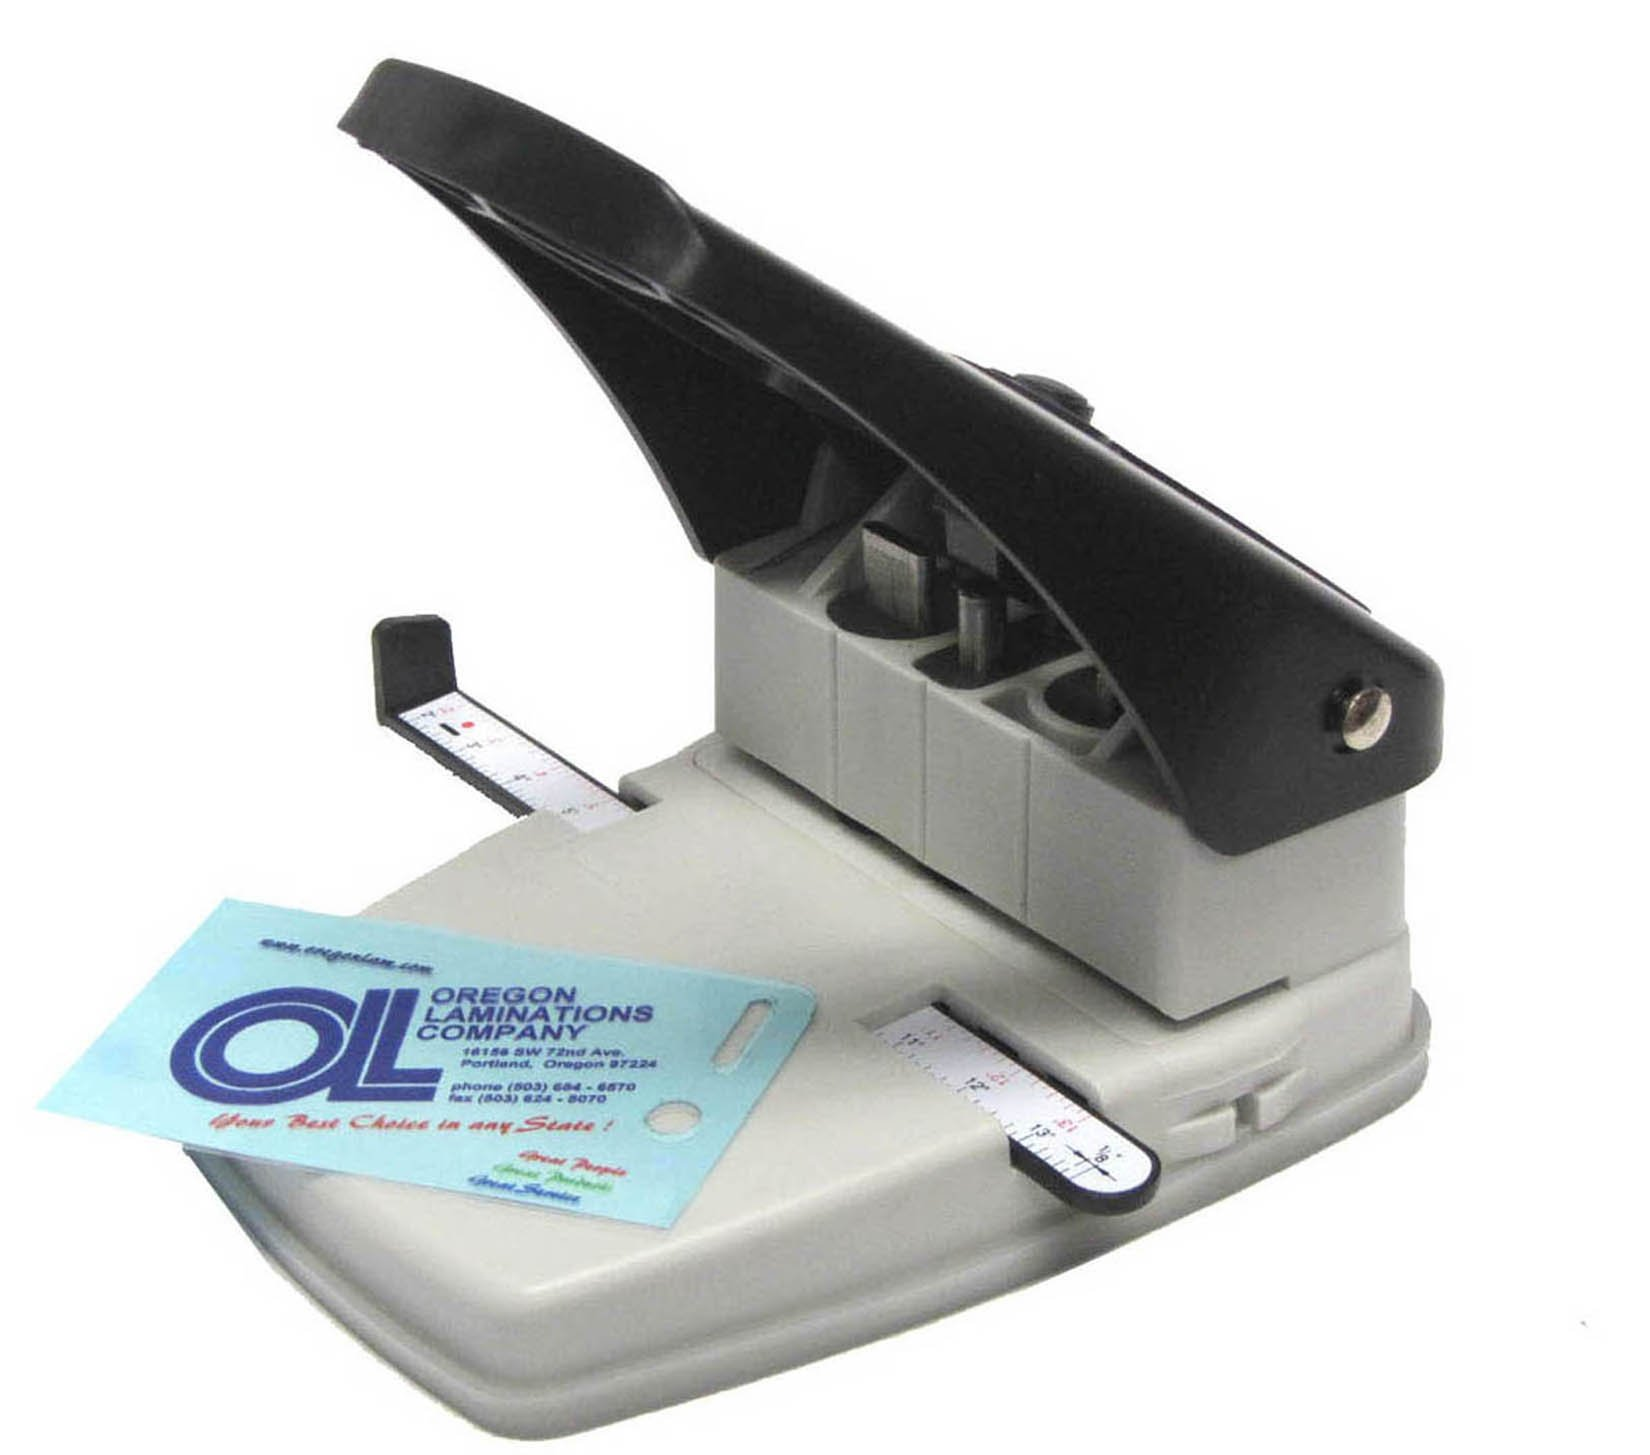 3-in-1 ID Badge Slot Punch, Corner Round Cutter & Hole Punch Tool